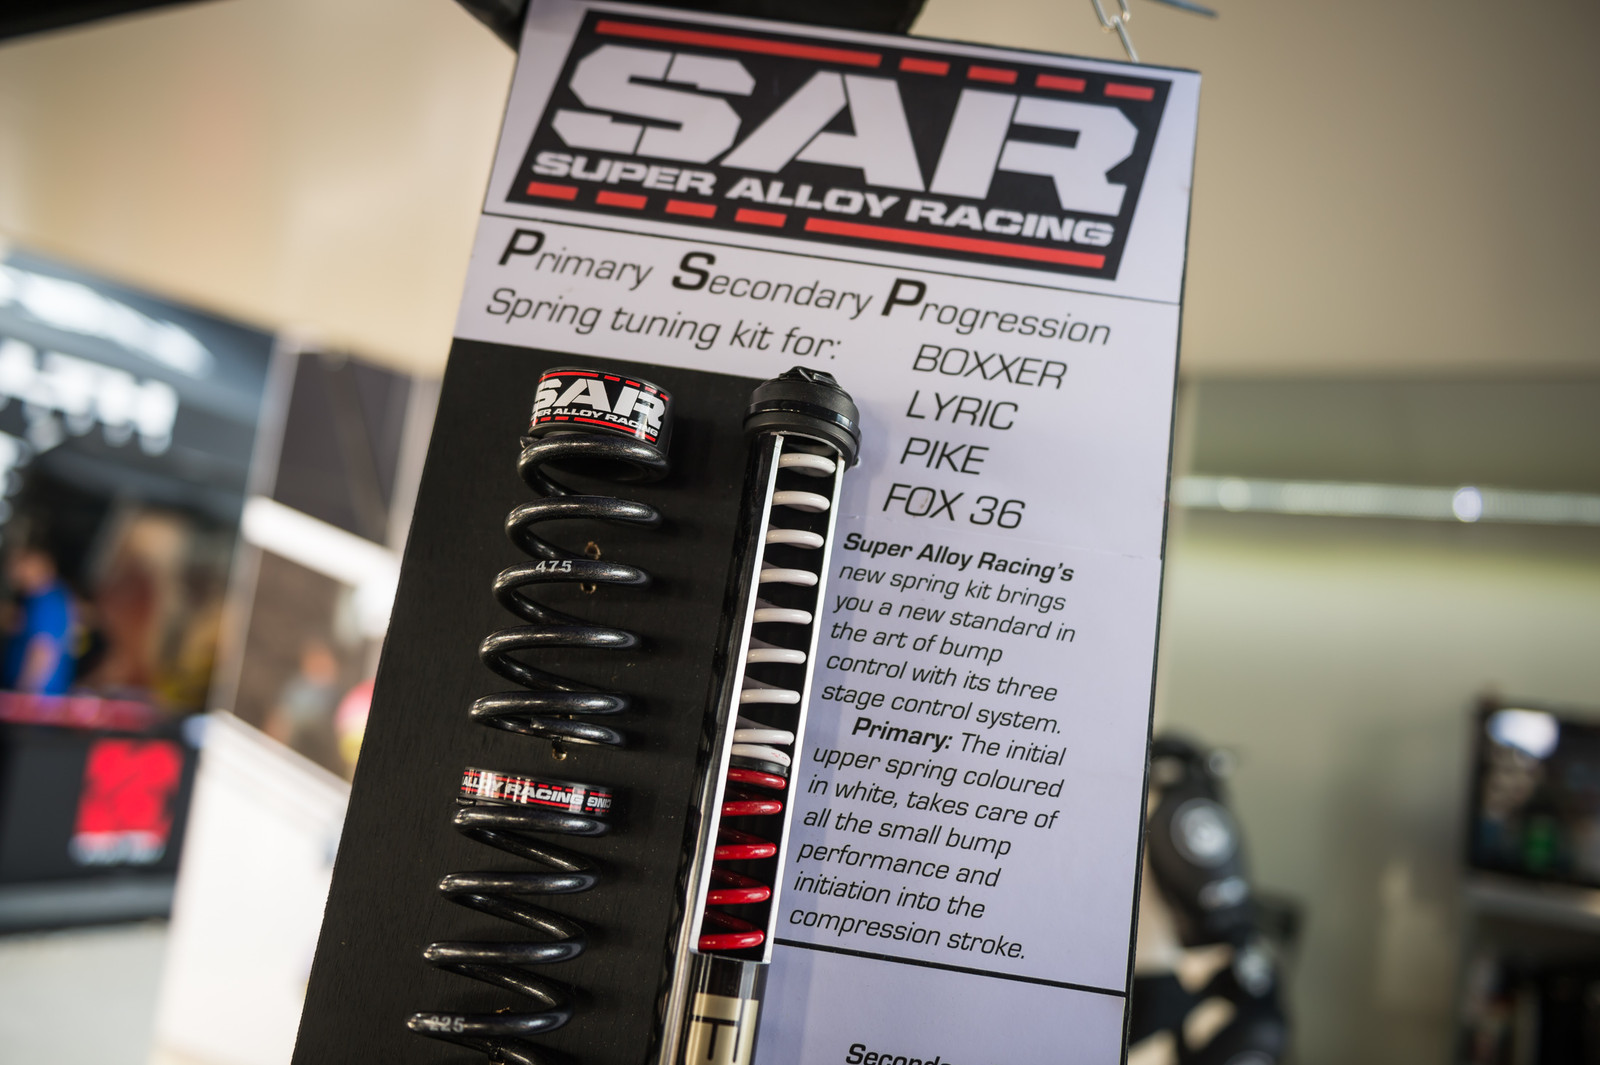 SAR PSP Spring Tuning Kit for BoXXer, Lyrik, Pike and FOX 36 - EUROBIKE - 2017 Mountain Bike Components - Mountain Biking Pictures - Vital MTB